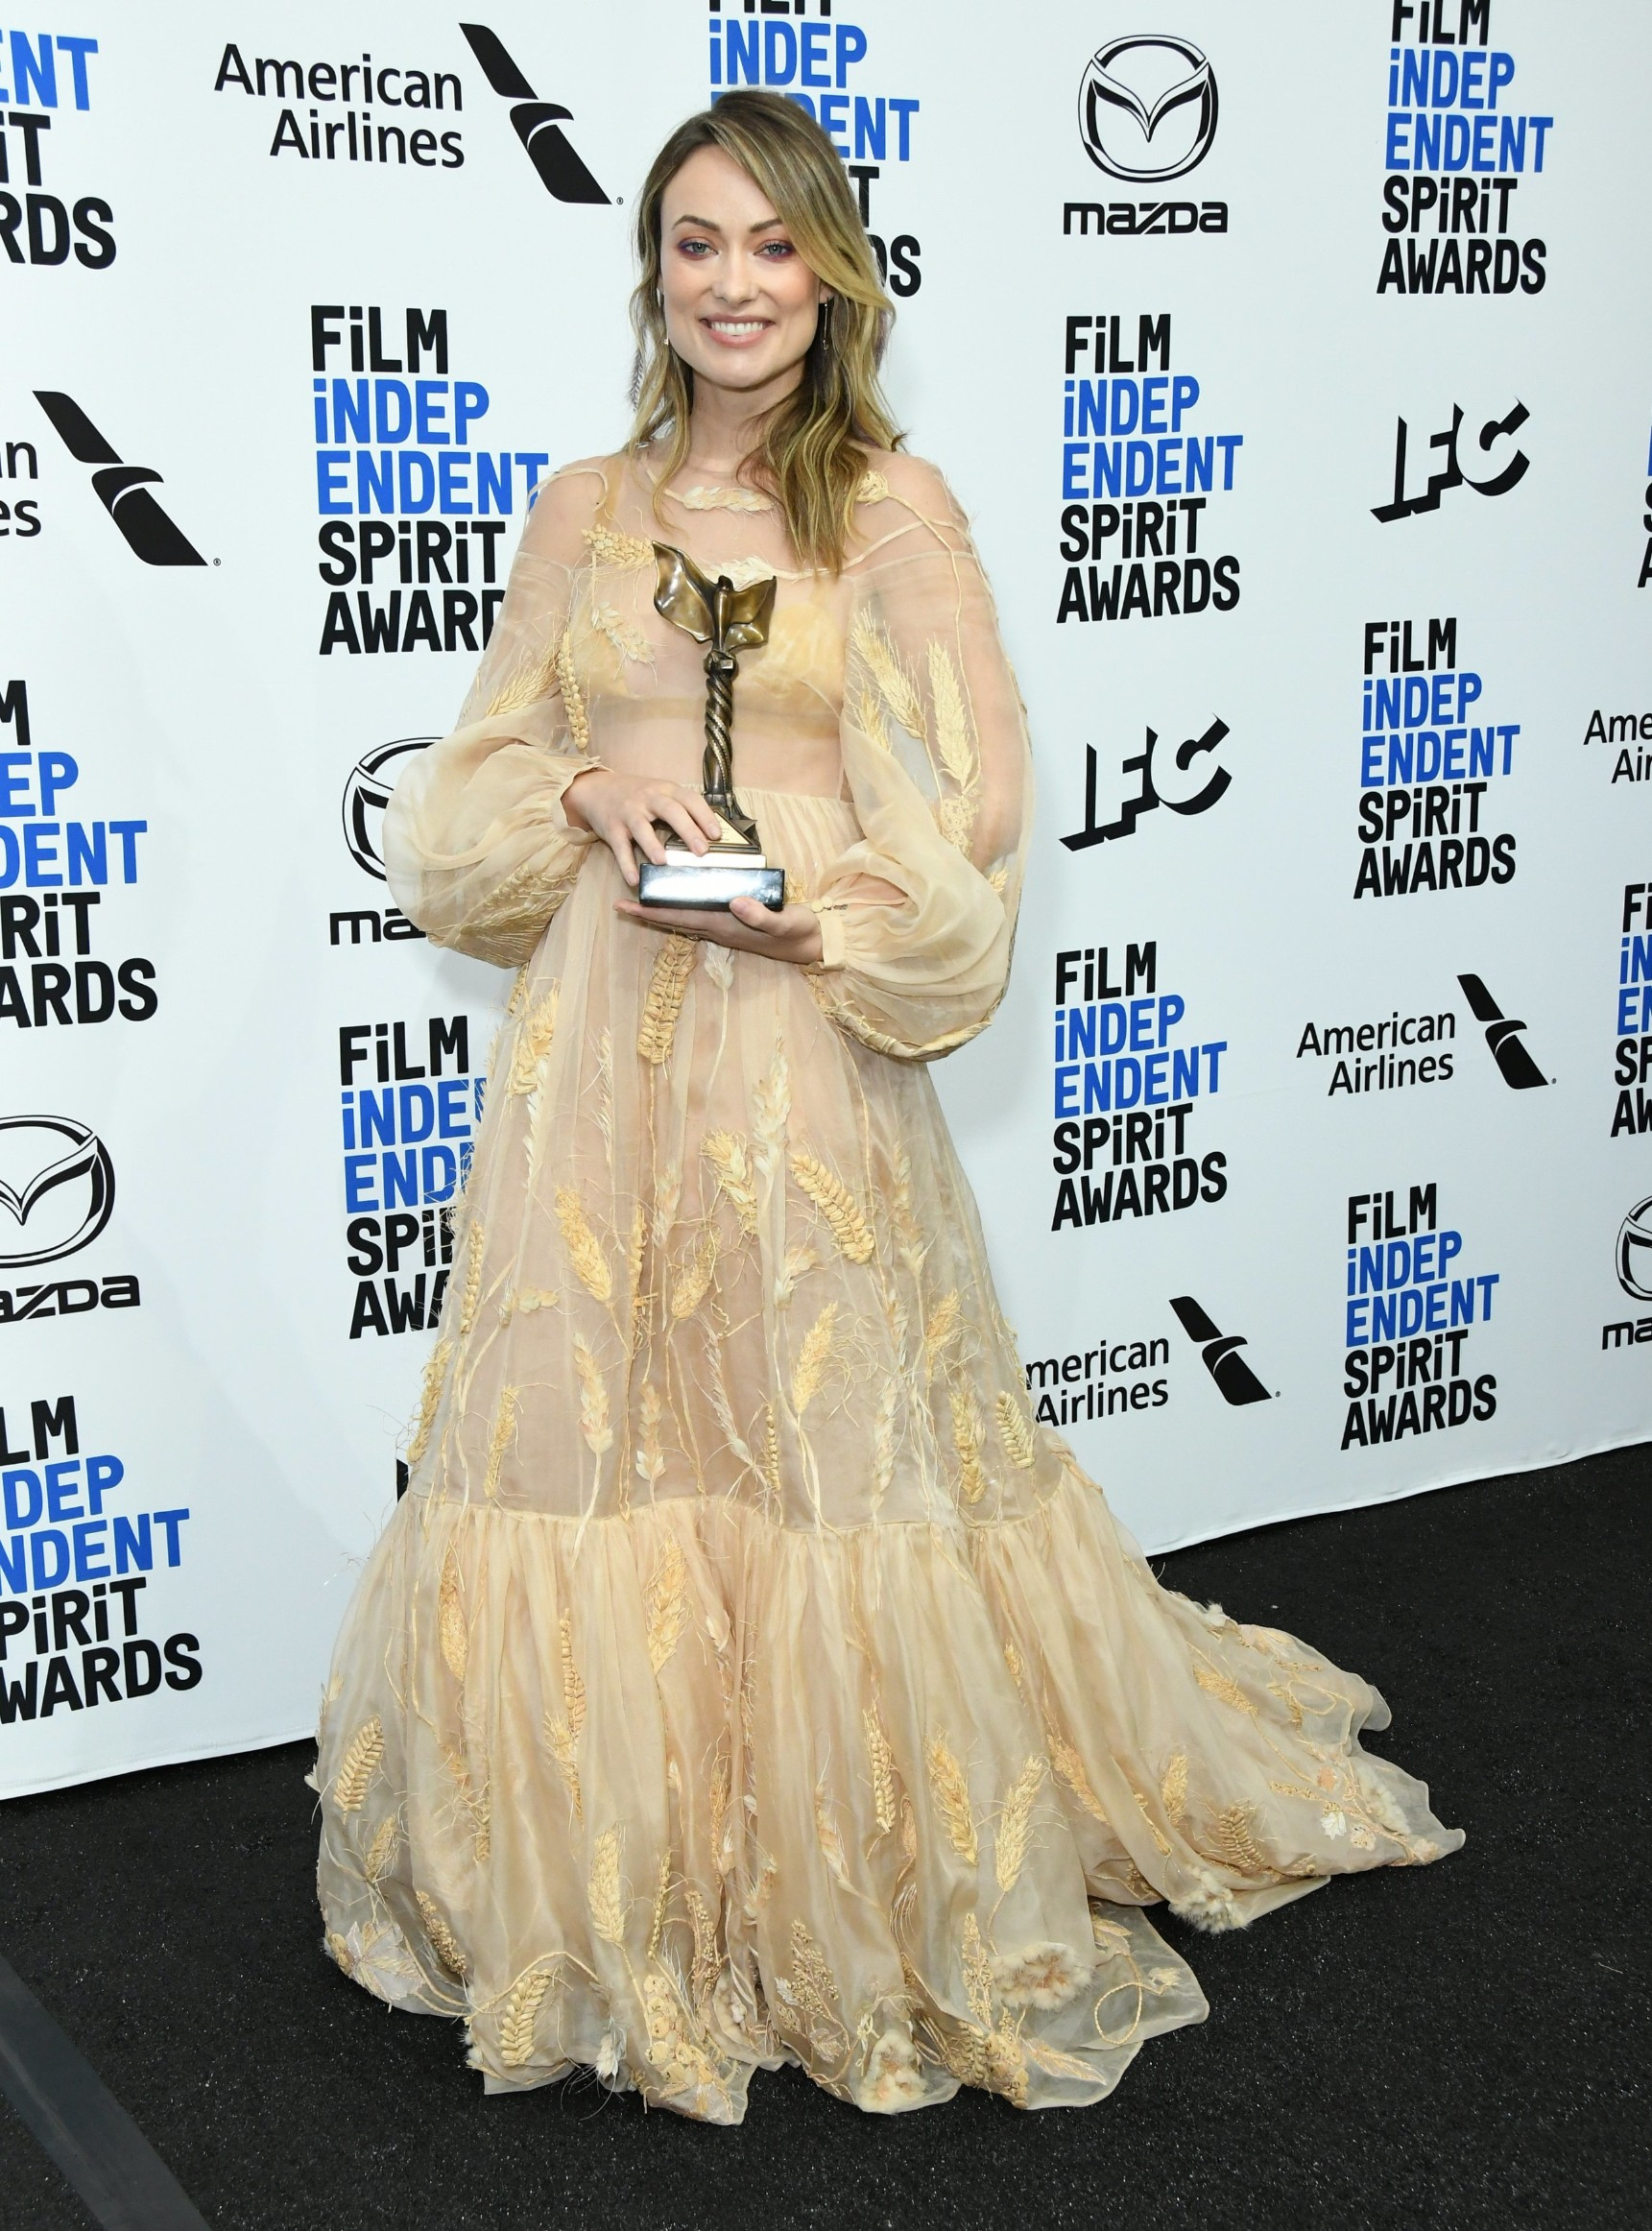 Olivia Wilde 35th Annual Film Independent Spirit Awards, Press Room, Los Angeles, USA - 08 Feb 2020, Image: 497303218, License: Rights-managed, Restrictions: , Model Release: no, Credit line: MediaPunch / Shutterstock Editorial / Profimedia